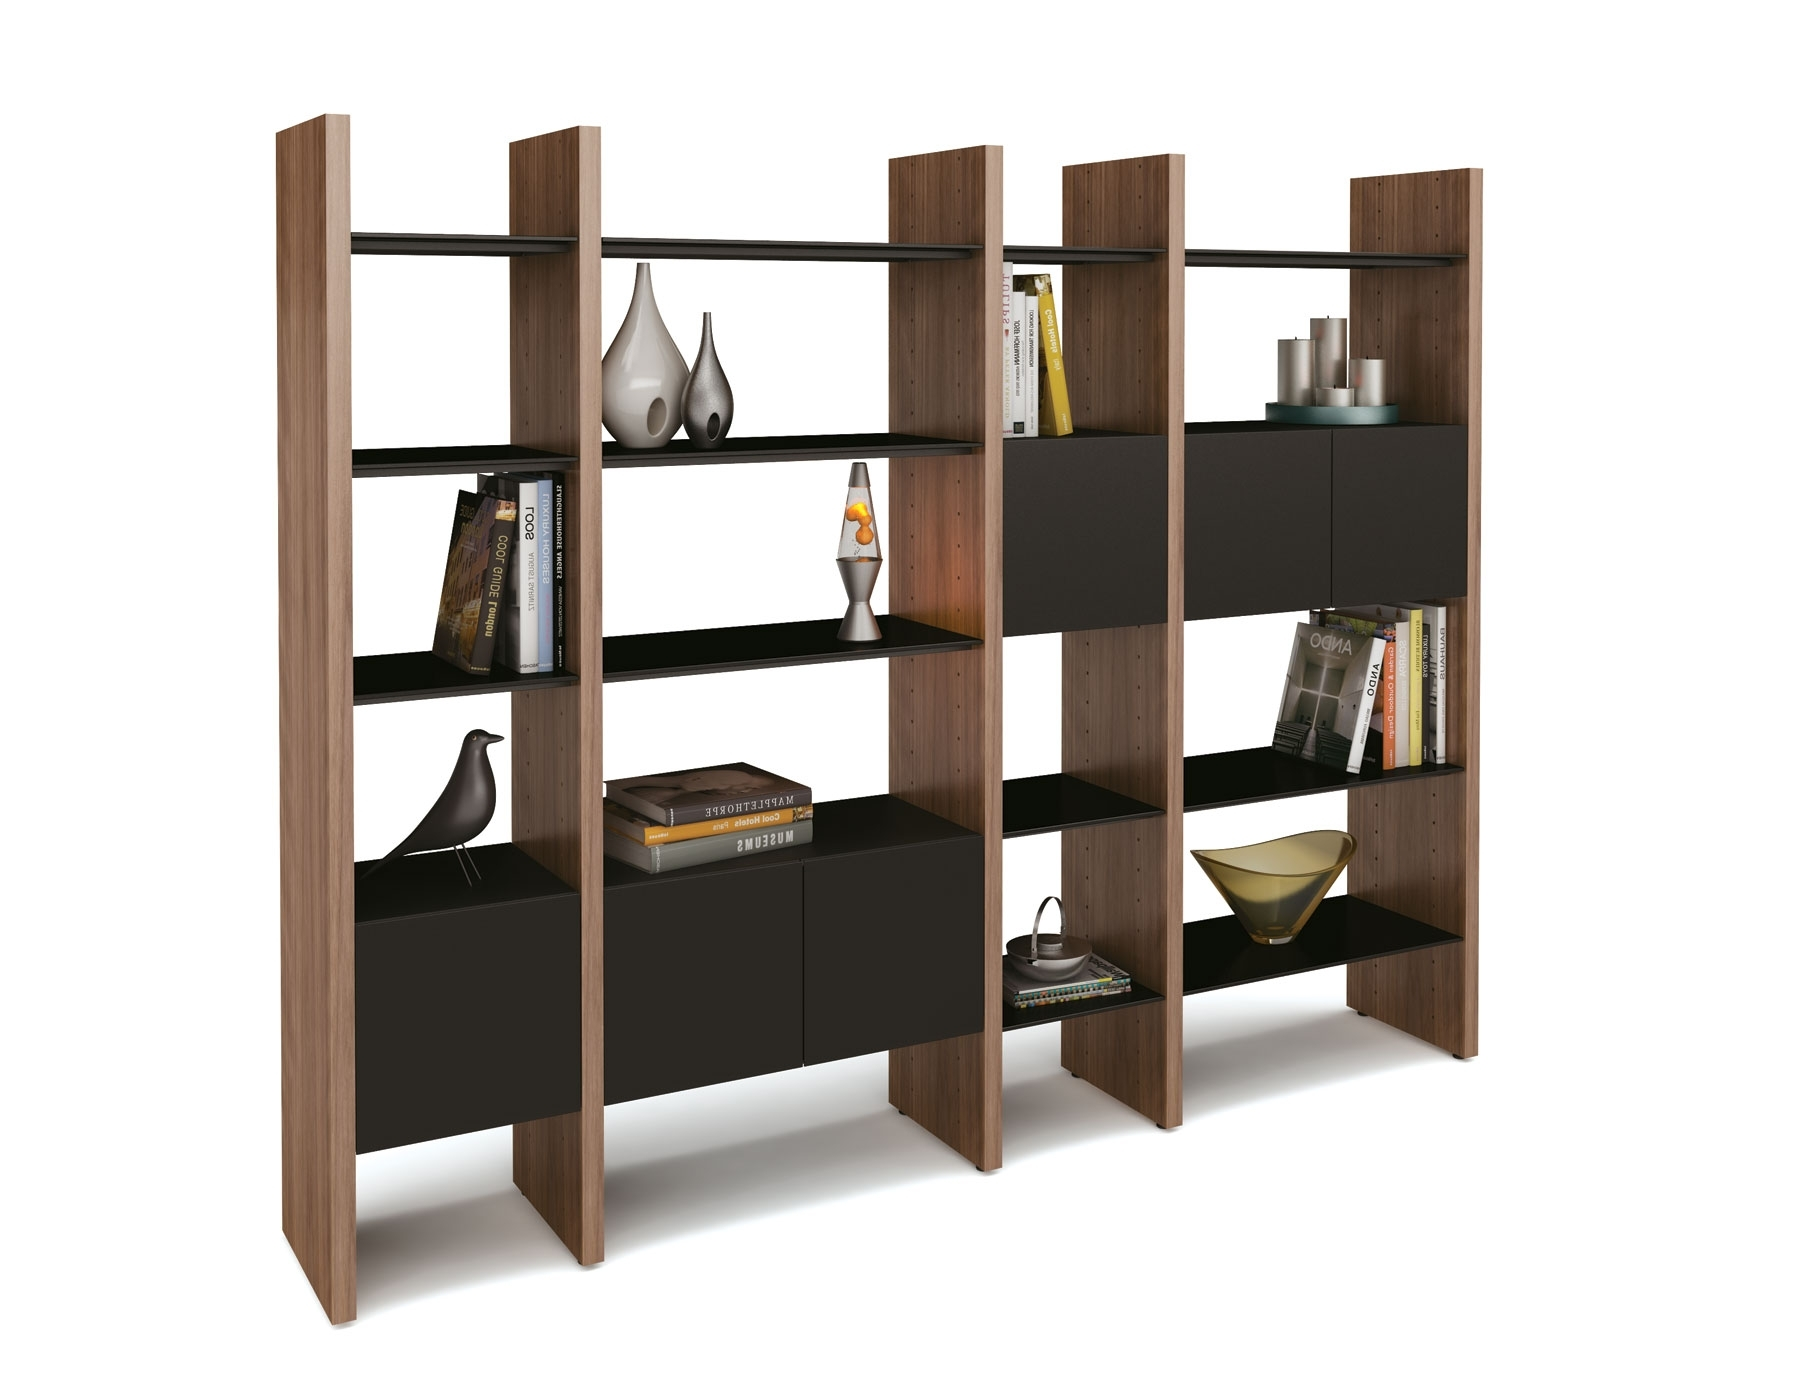 Outstanding Modern Shelving Units With Wooden Divider In Brown Within Fashionable Large Bookshelves Units (View 4 of 15)